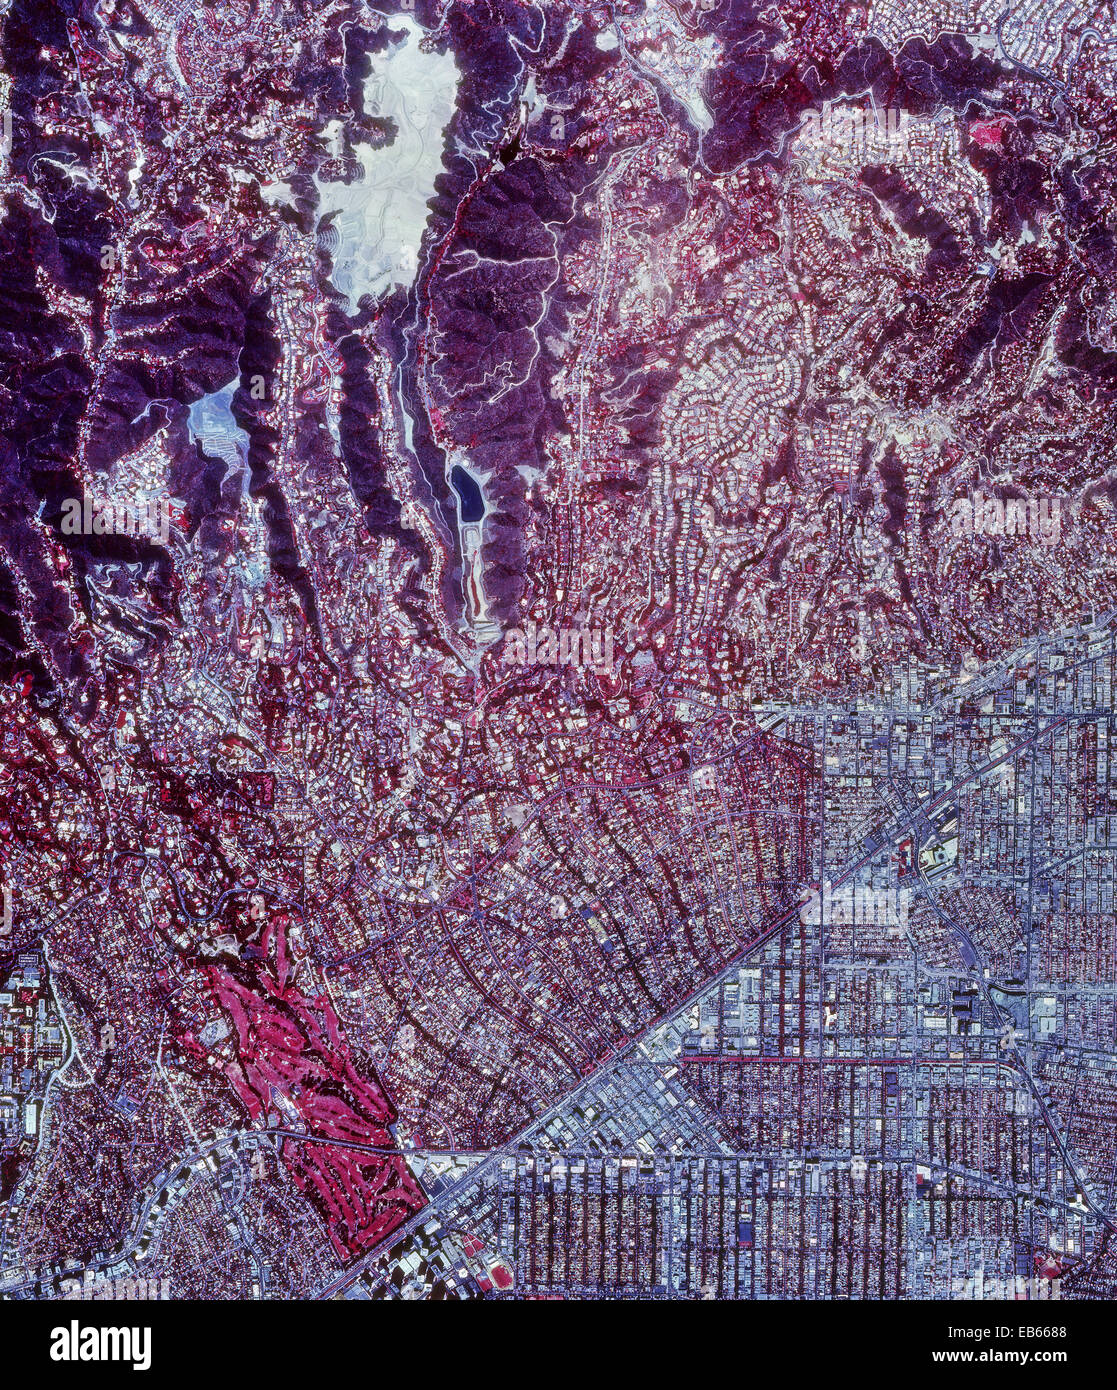 historical infrared aerial photograph of Beverly Hills, California, 1989 - Stock Image